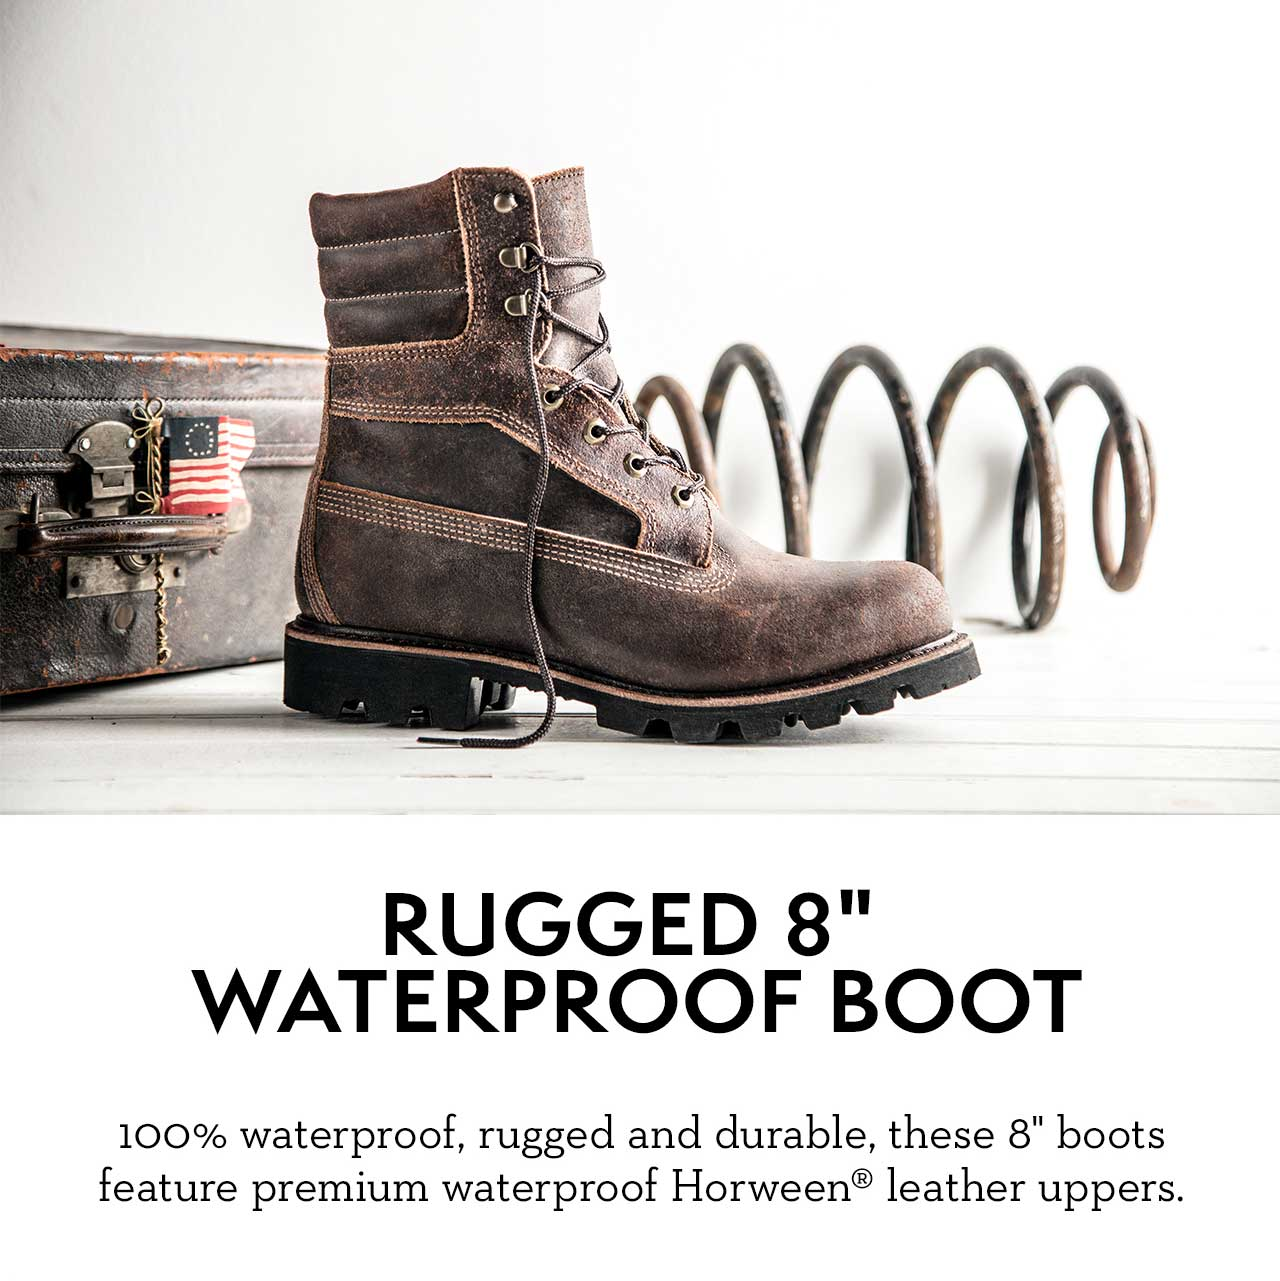 "Rugged 8"" Waterproof Boot